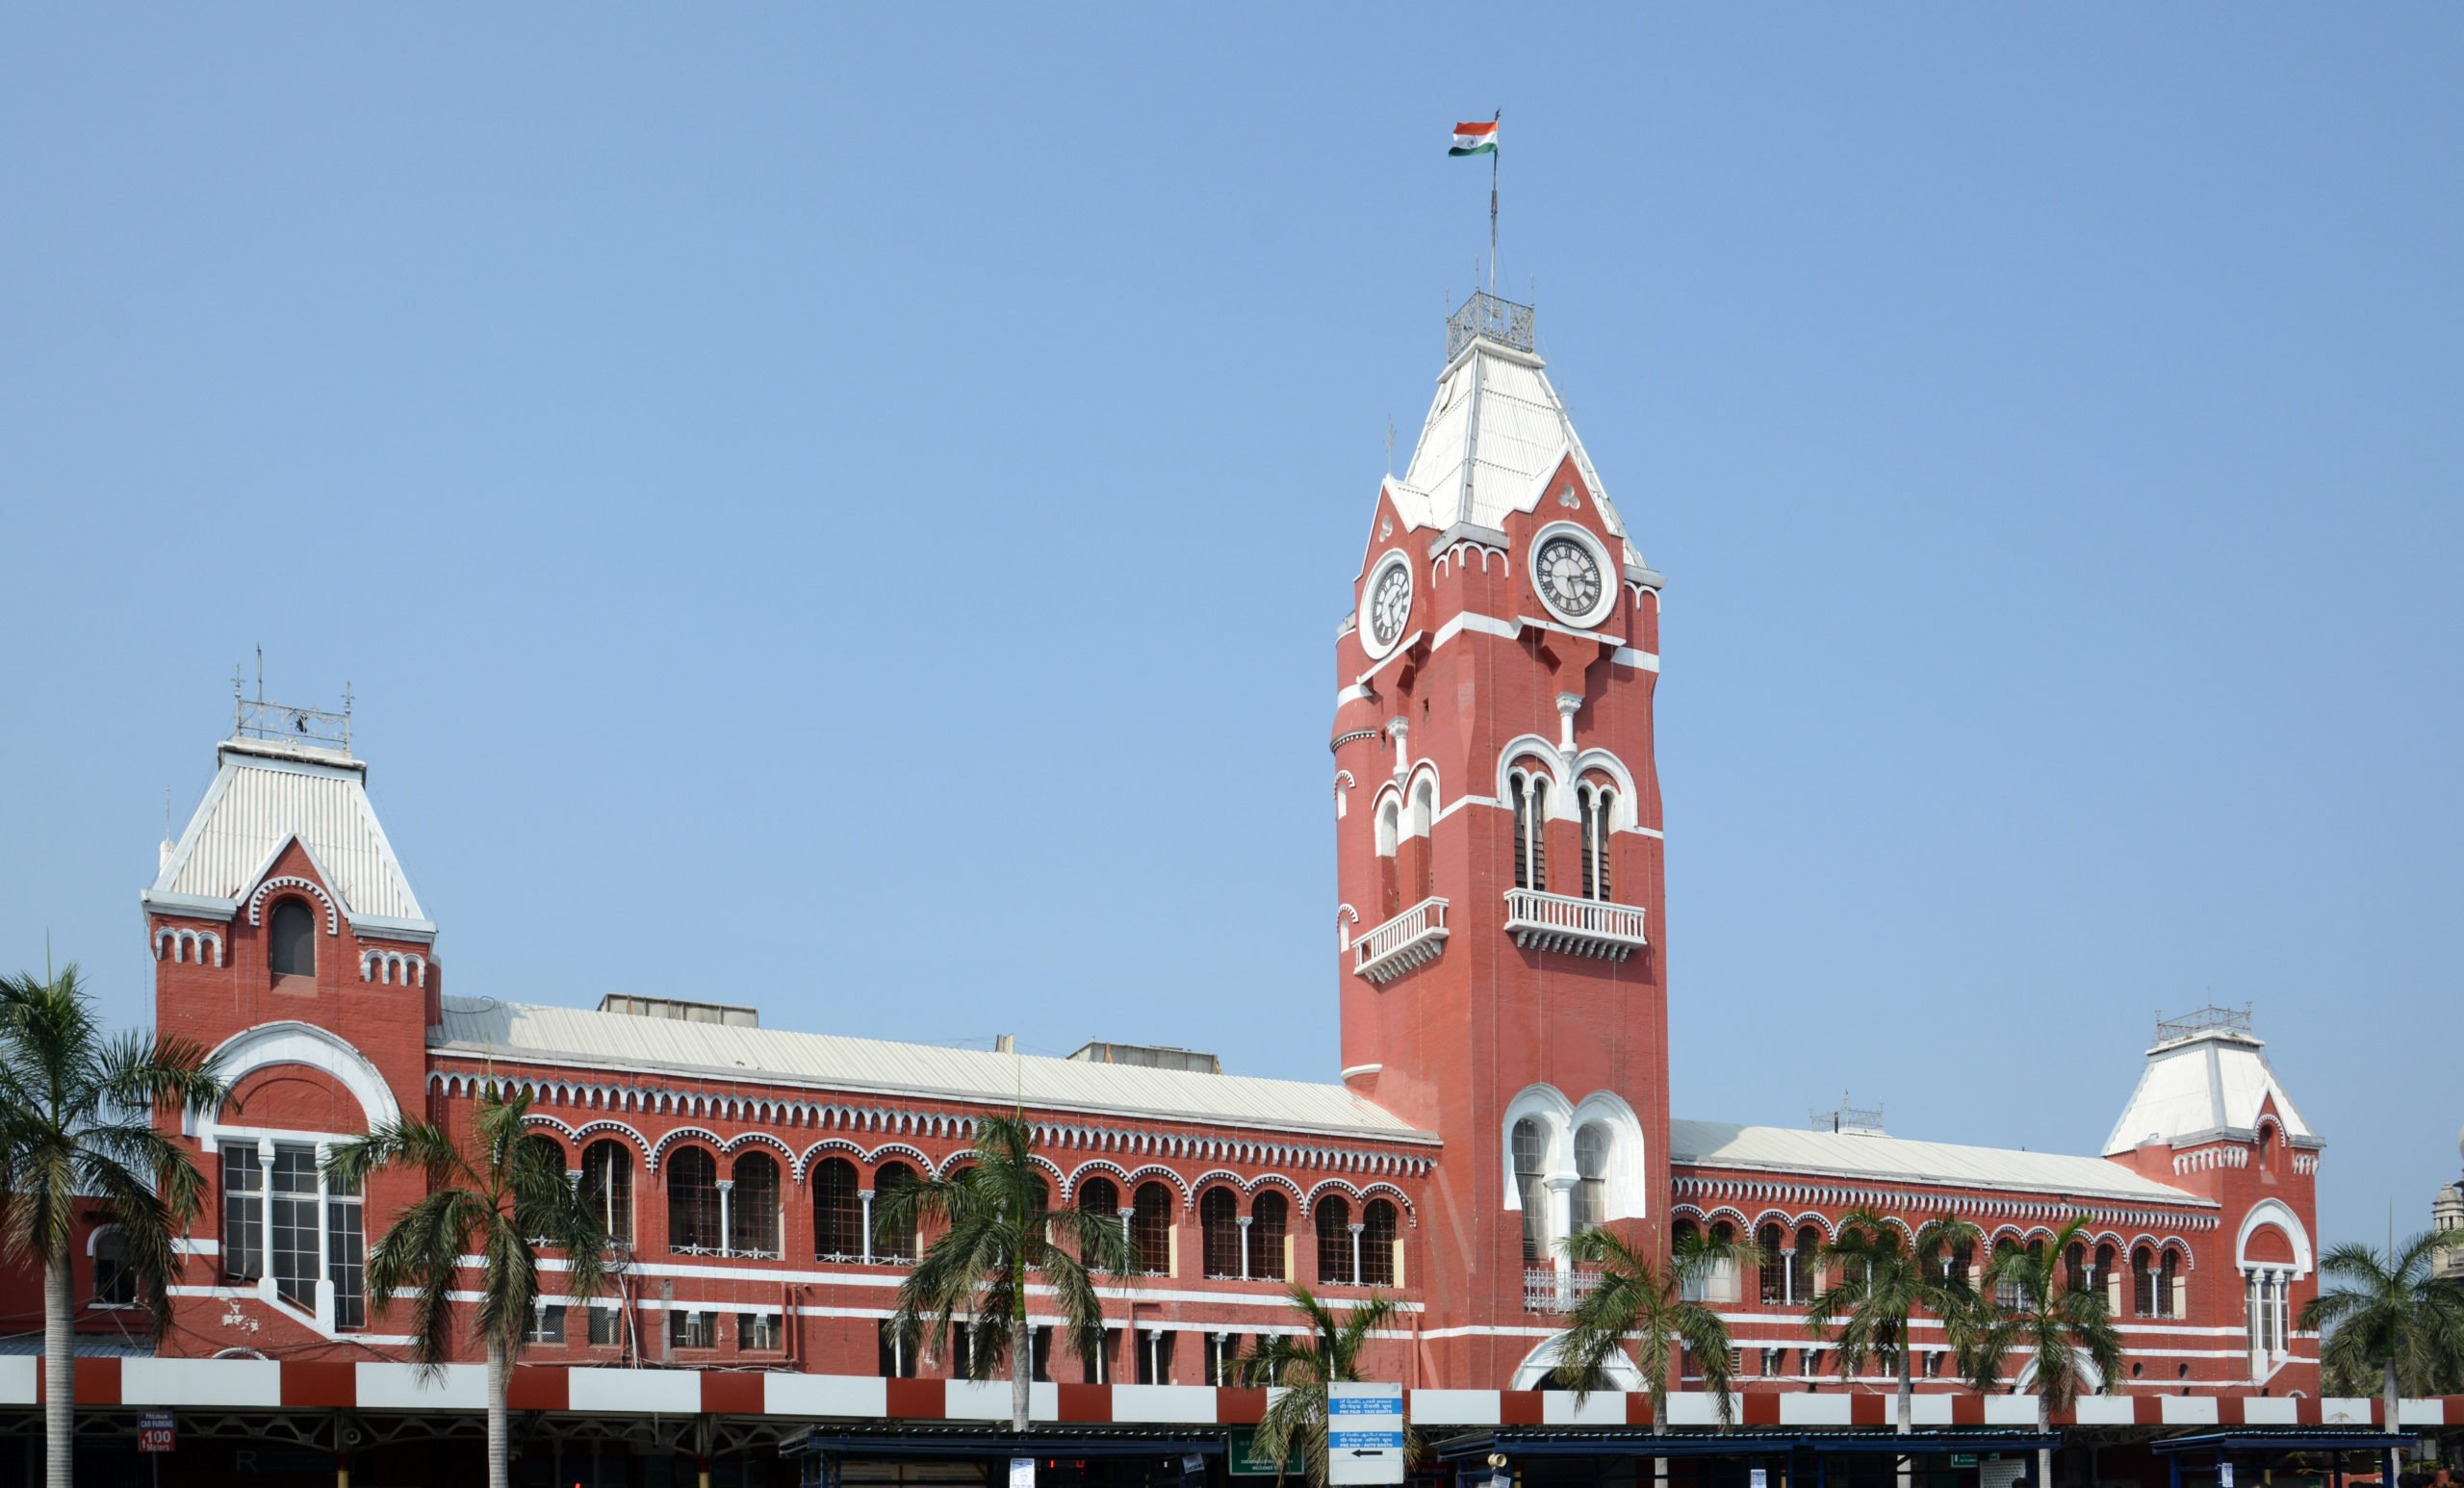 Explore The Historical Story Behind Chennai Architecture In Our Gems Of British Architecture Walking Tour In Chennai